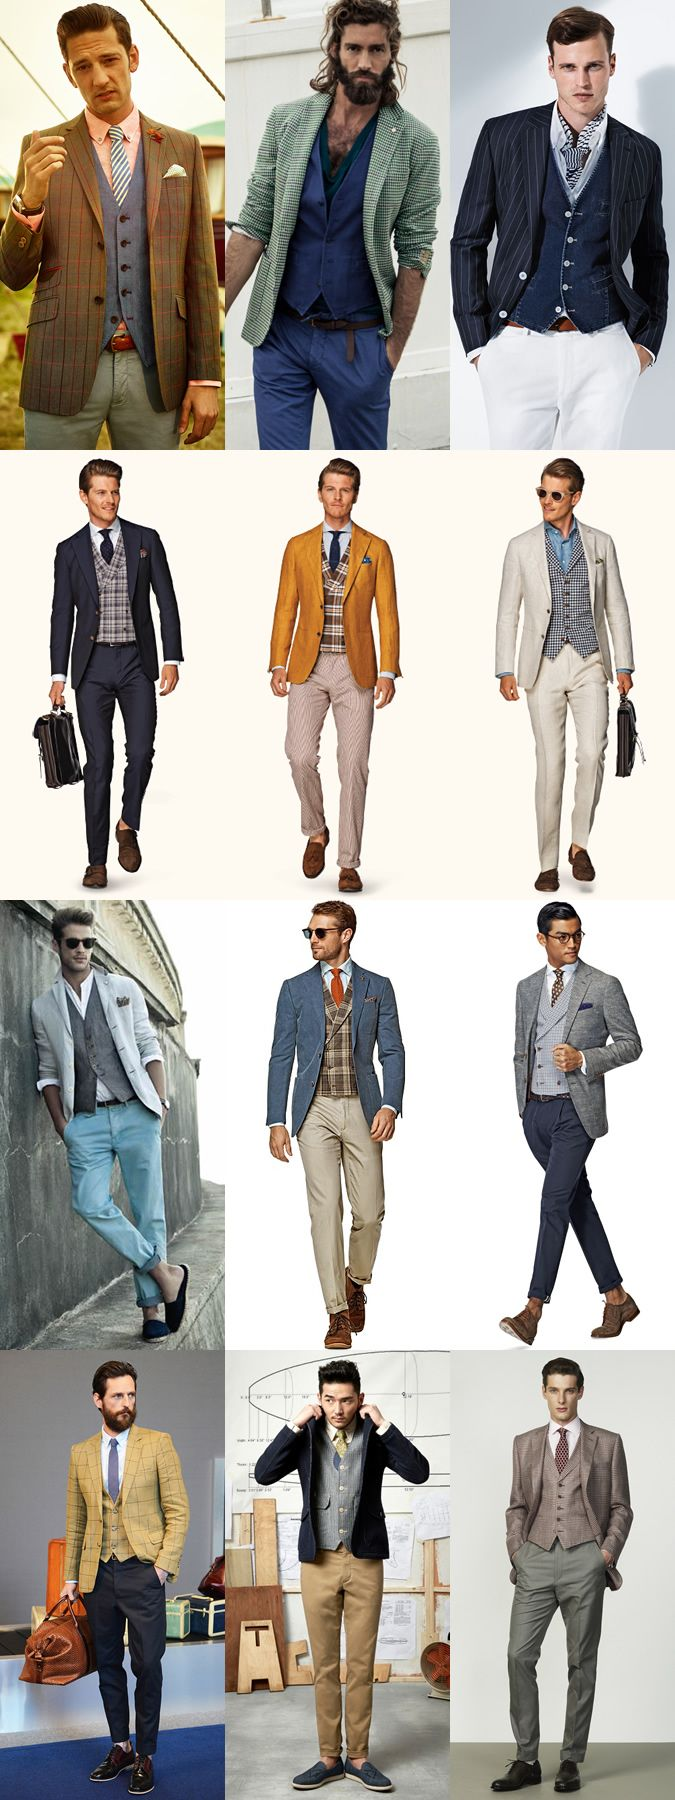 Menus waistcoat layering formal and smartcasual outfit